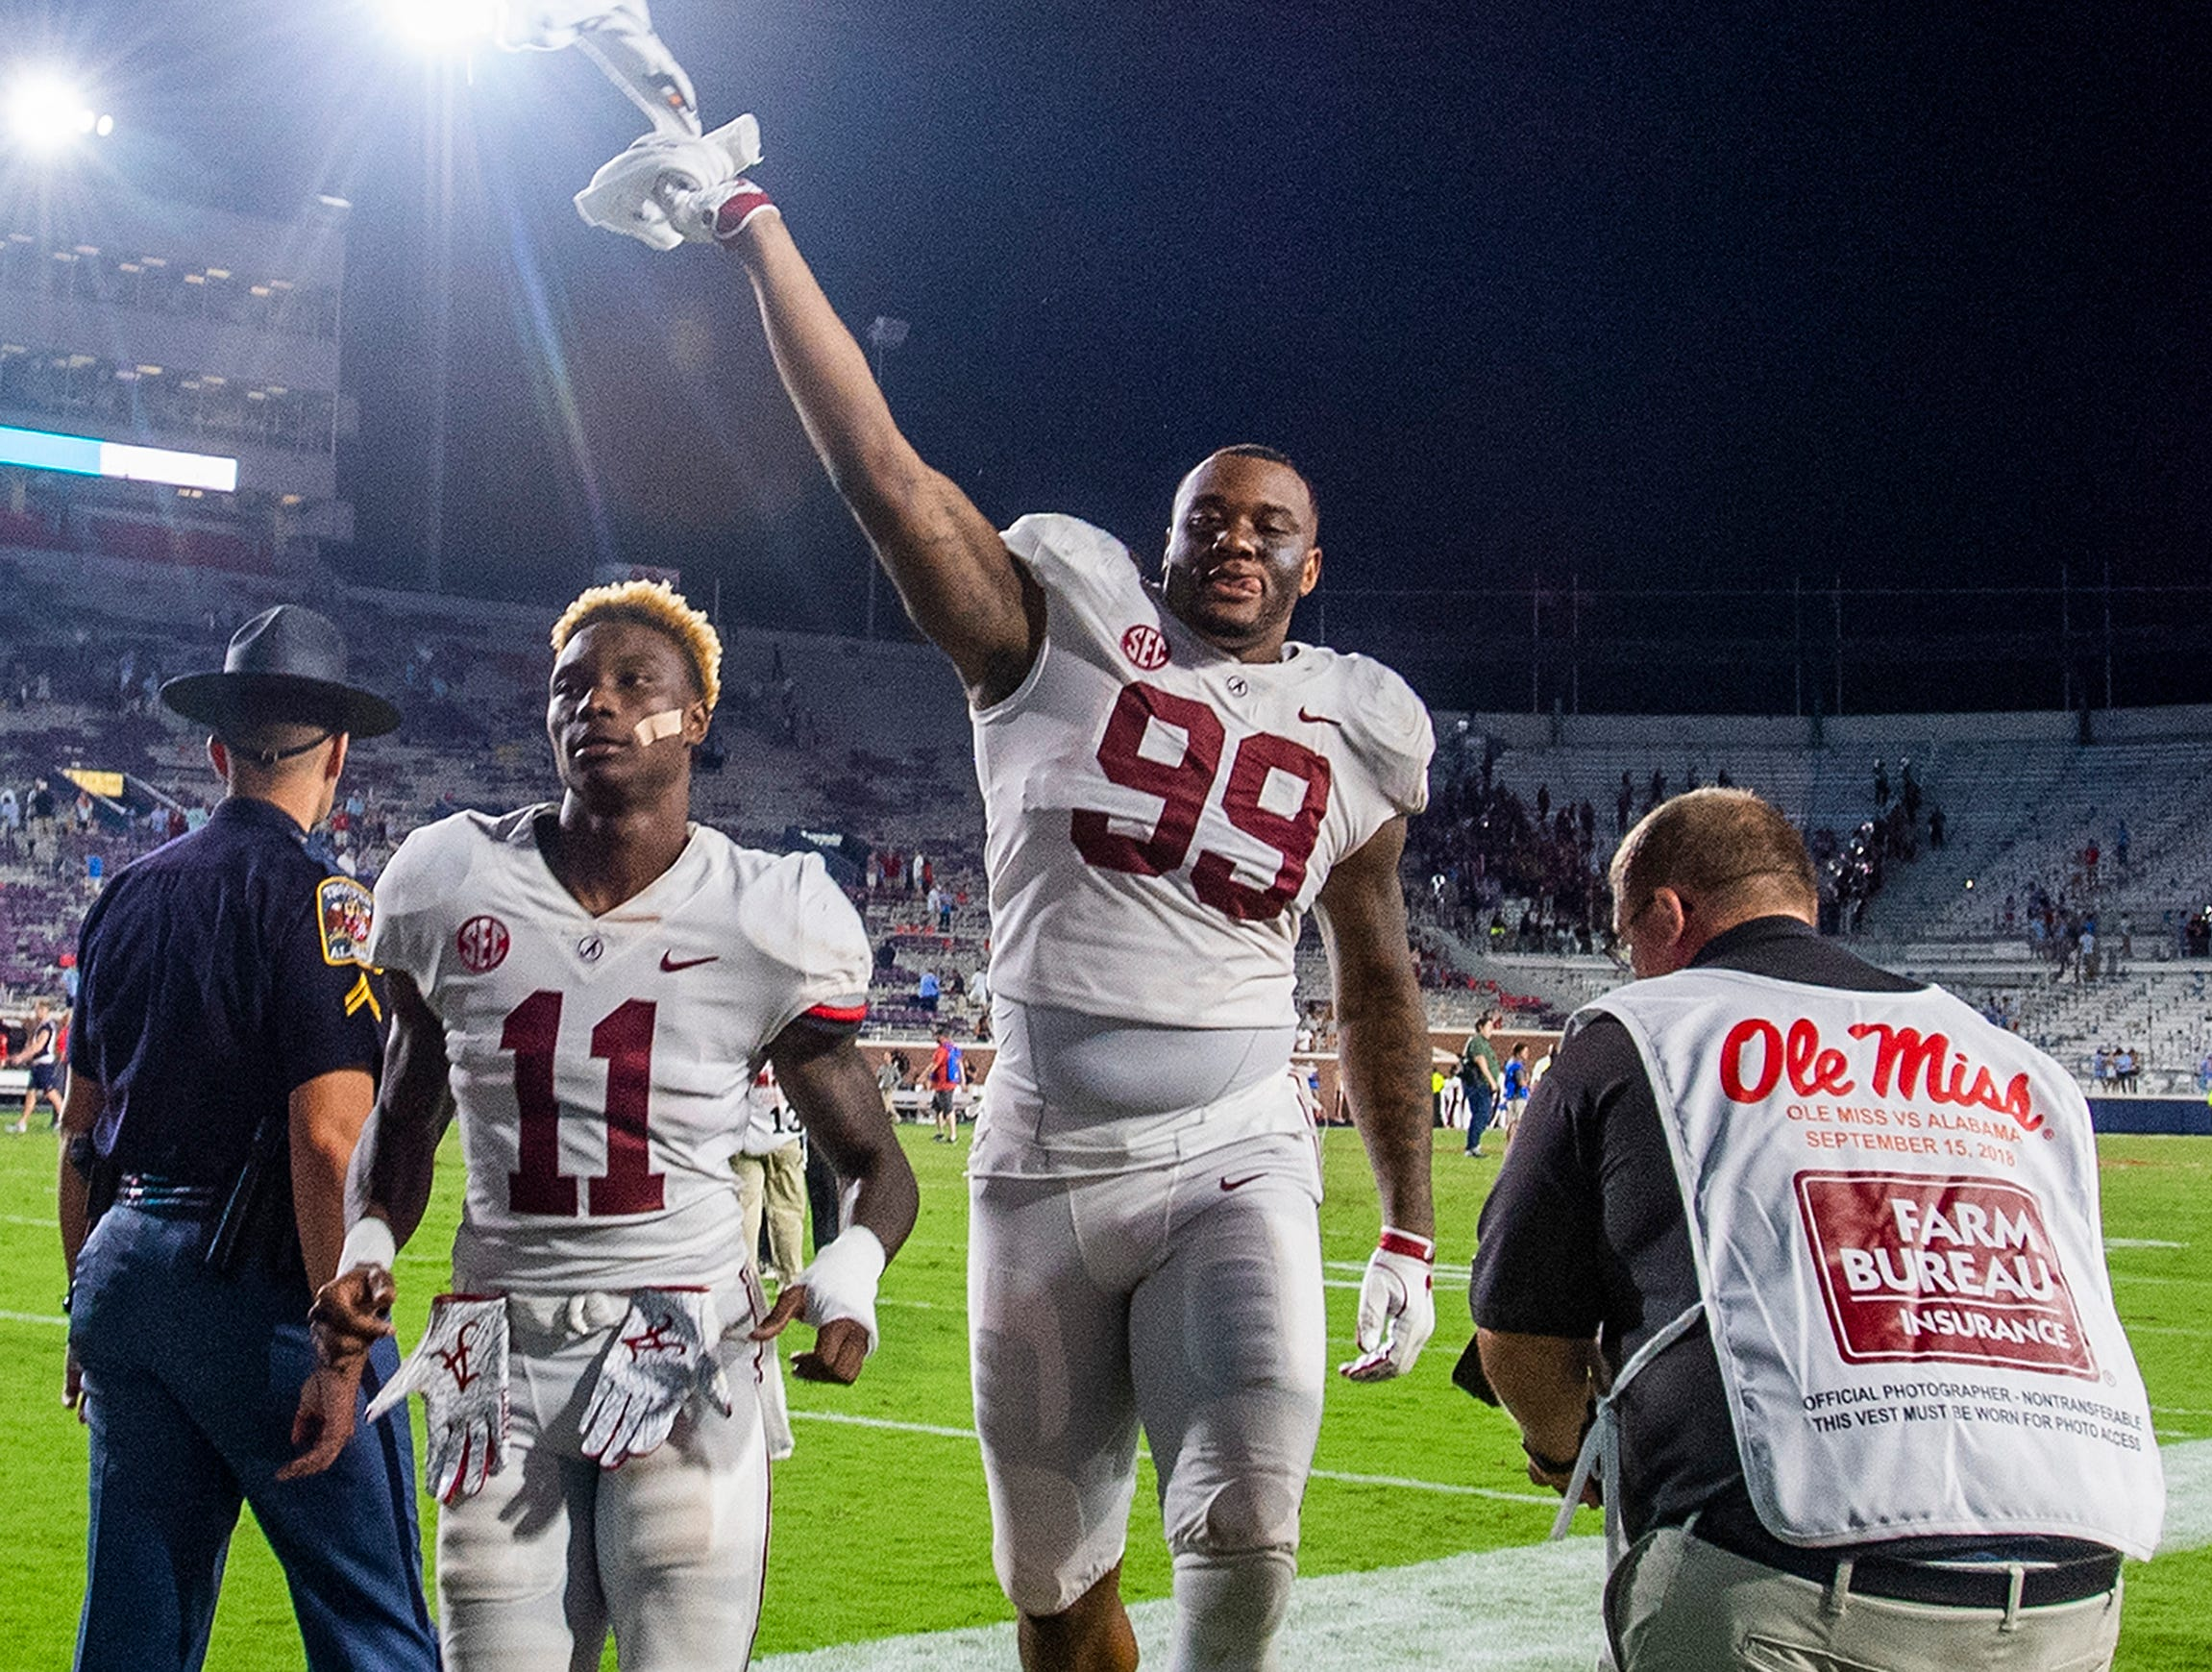 Alabama wide receiver Henry Ruggs, III, (11) and Alabama defensive lineman Raekwon Davis (99) leave the field after defeating Ole Miss in Oxford, Ms., on Saturday September 15, 2018.